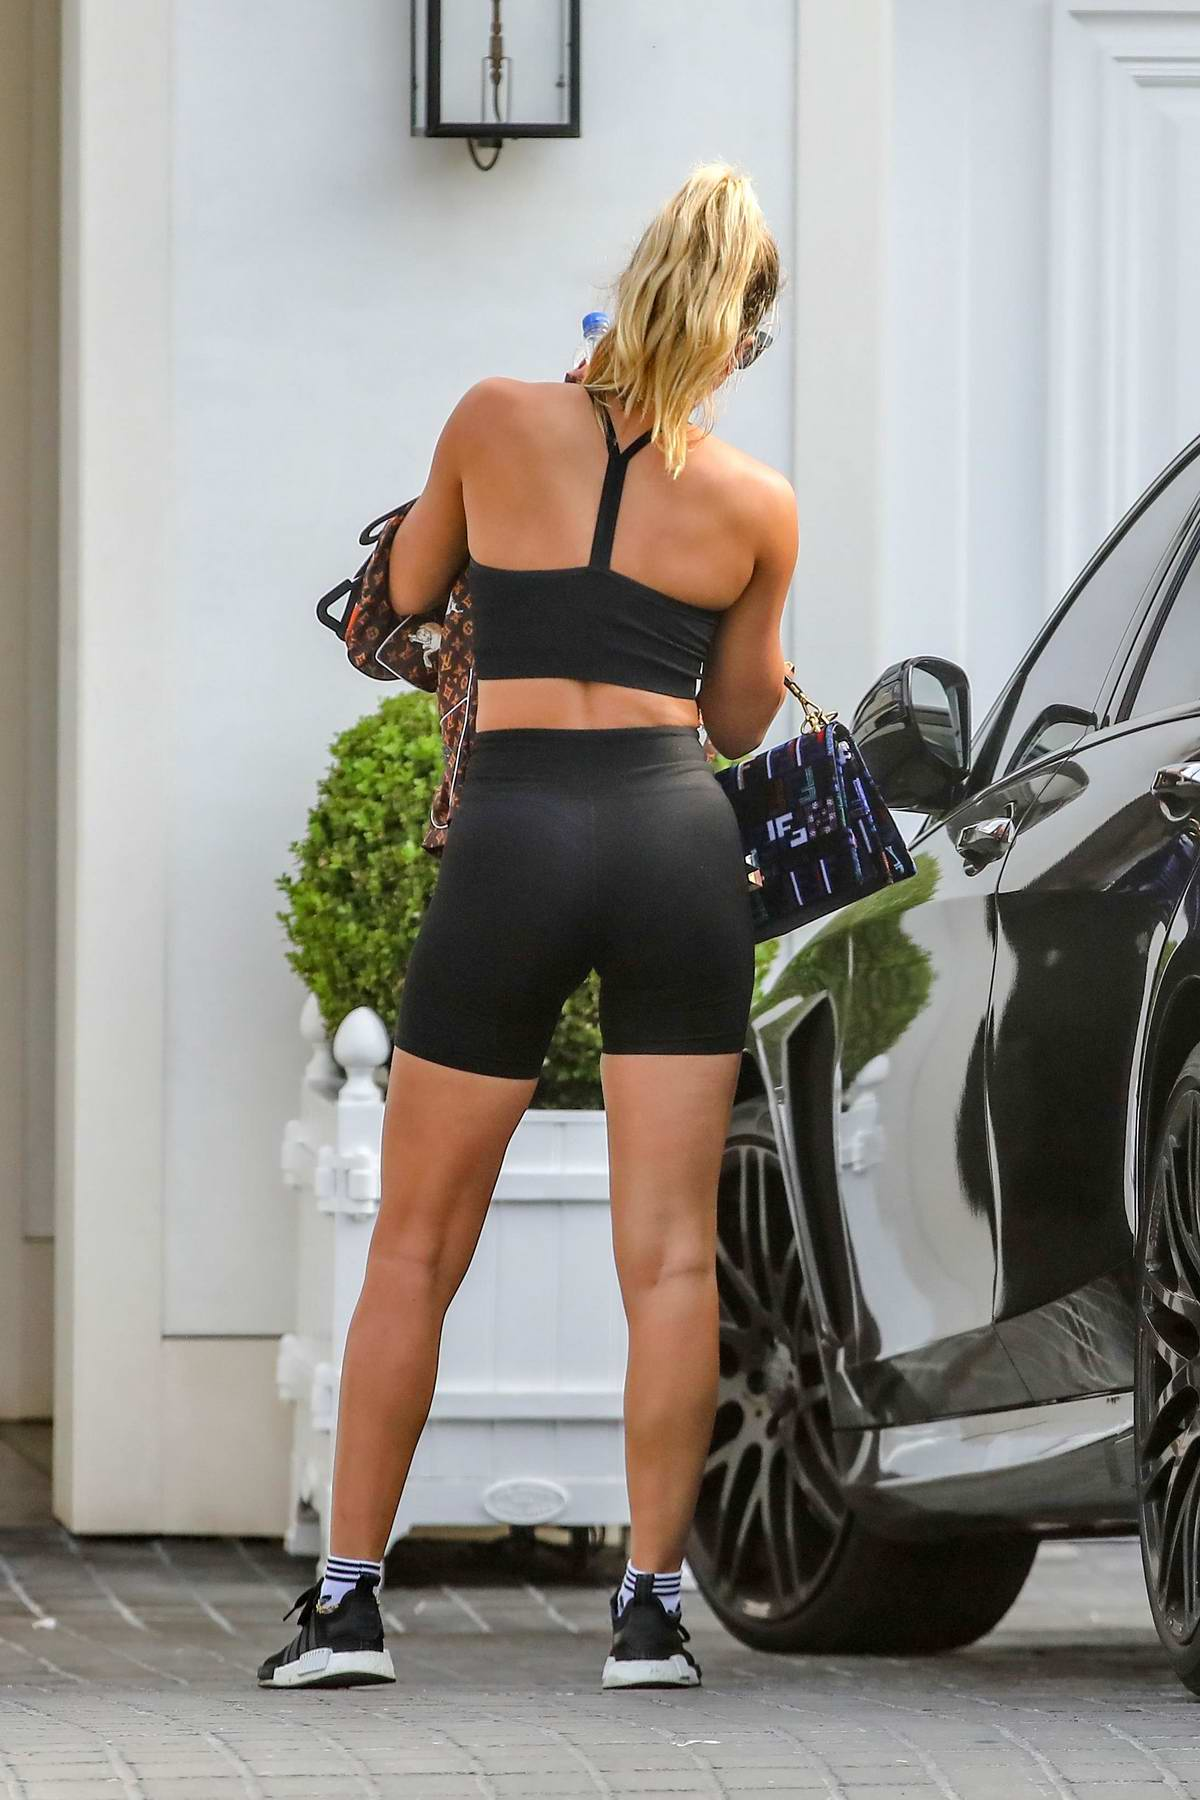 Sofia Richie displays her toned body in black sports bra and legging shorts as she heads out in Malibu, California